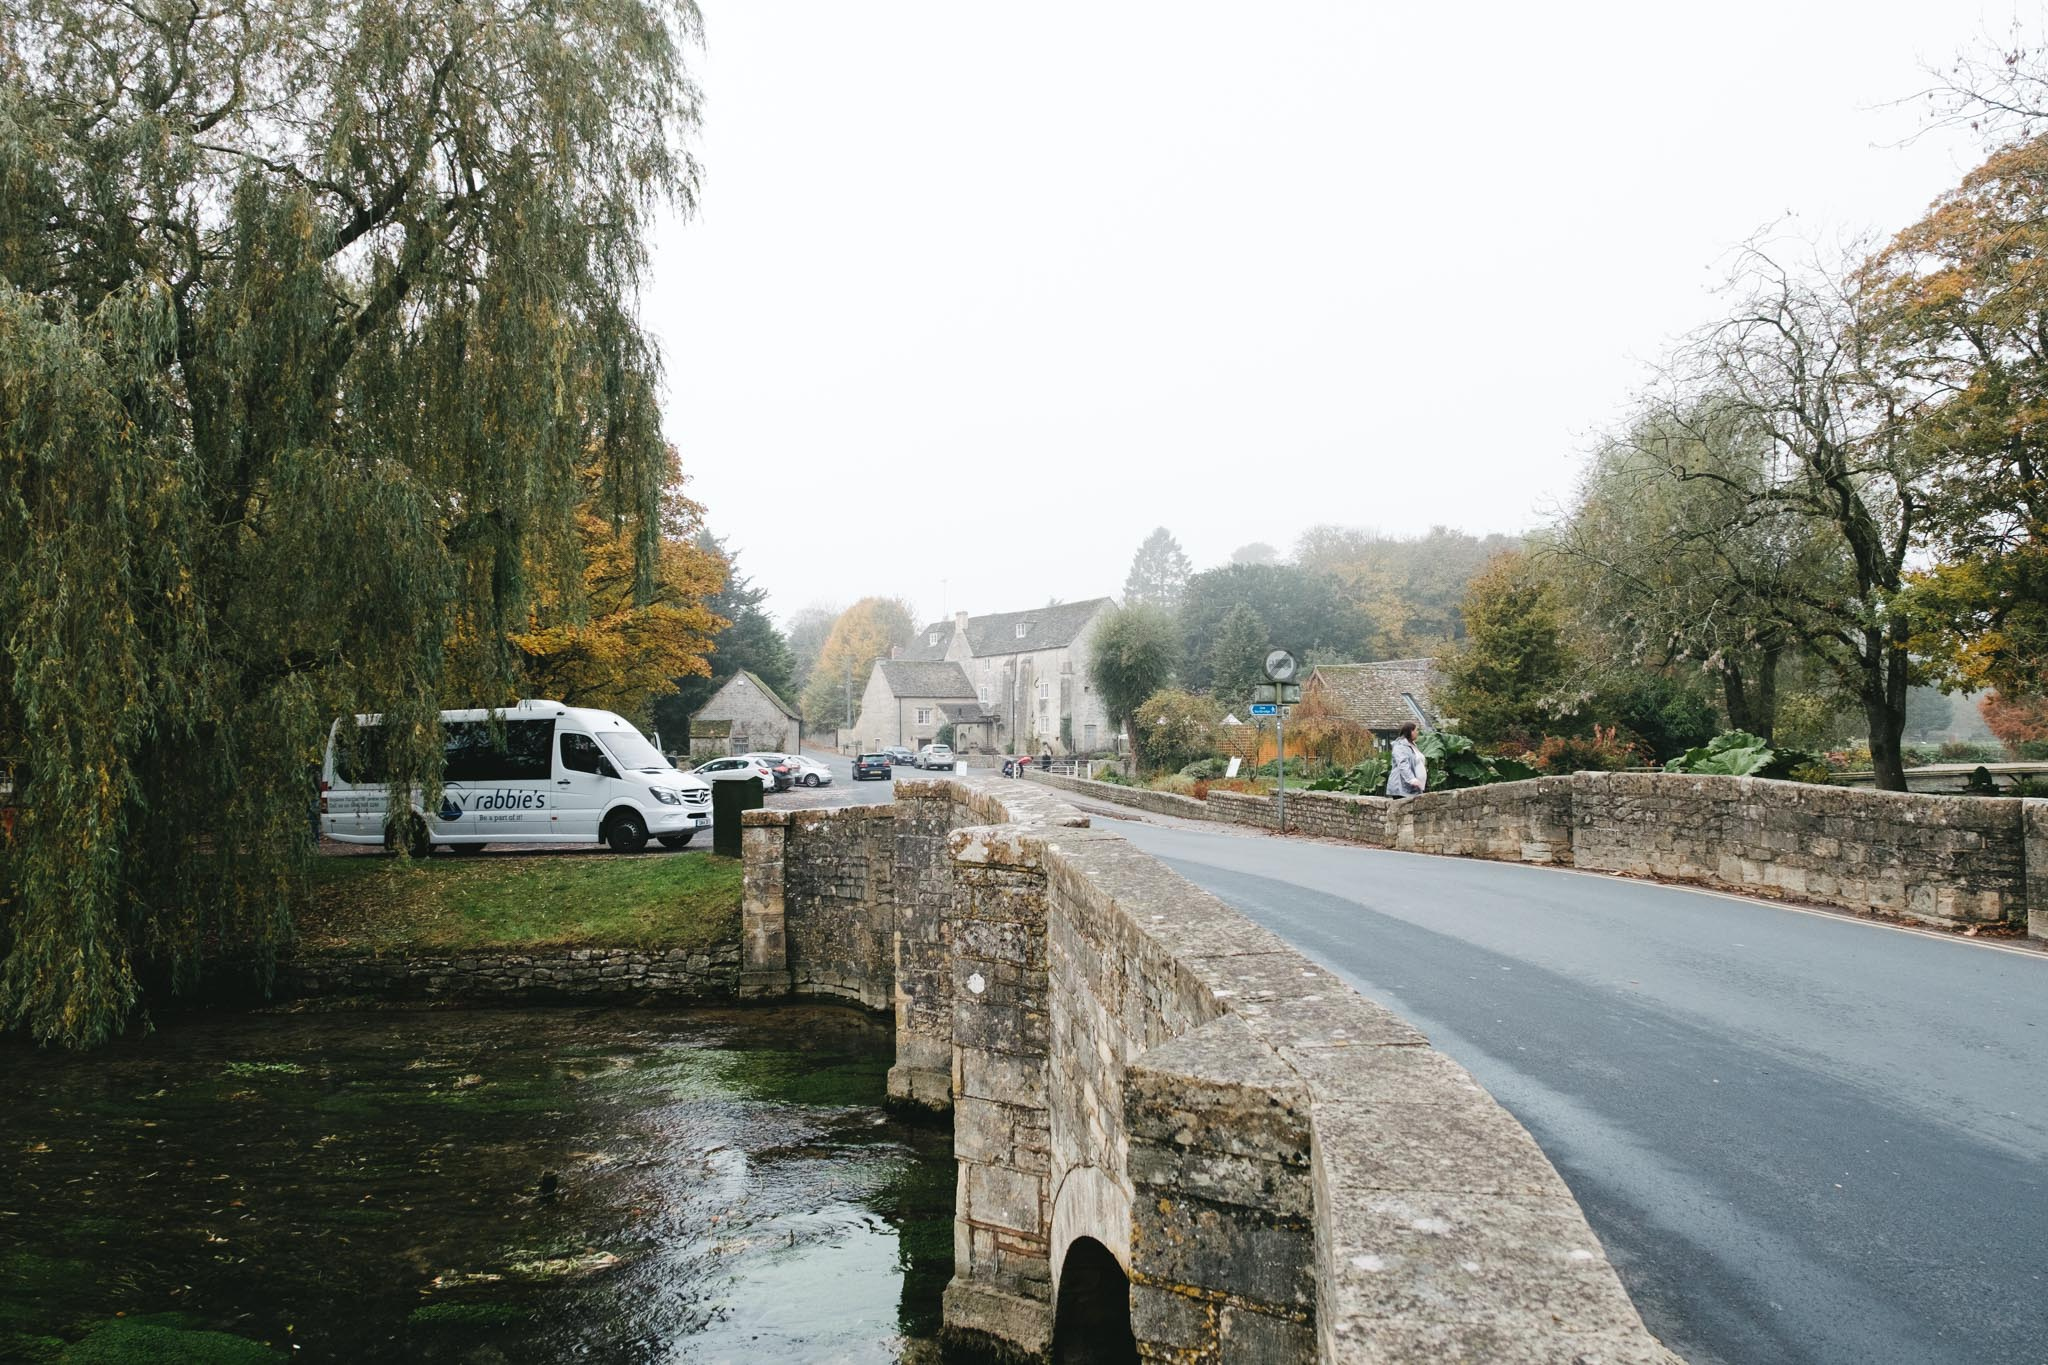 Rabbies-Cotswolds-161031-111422.jpg